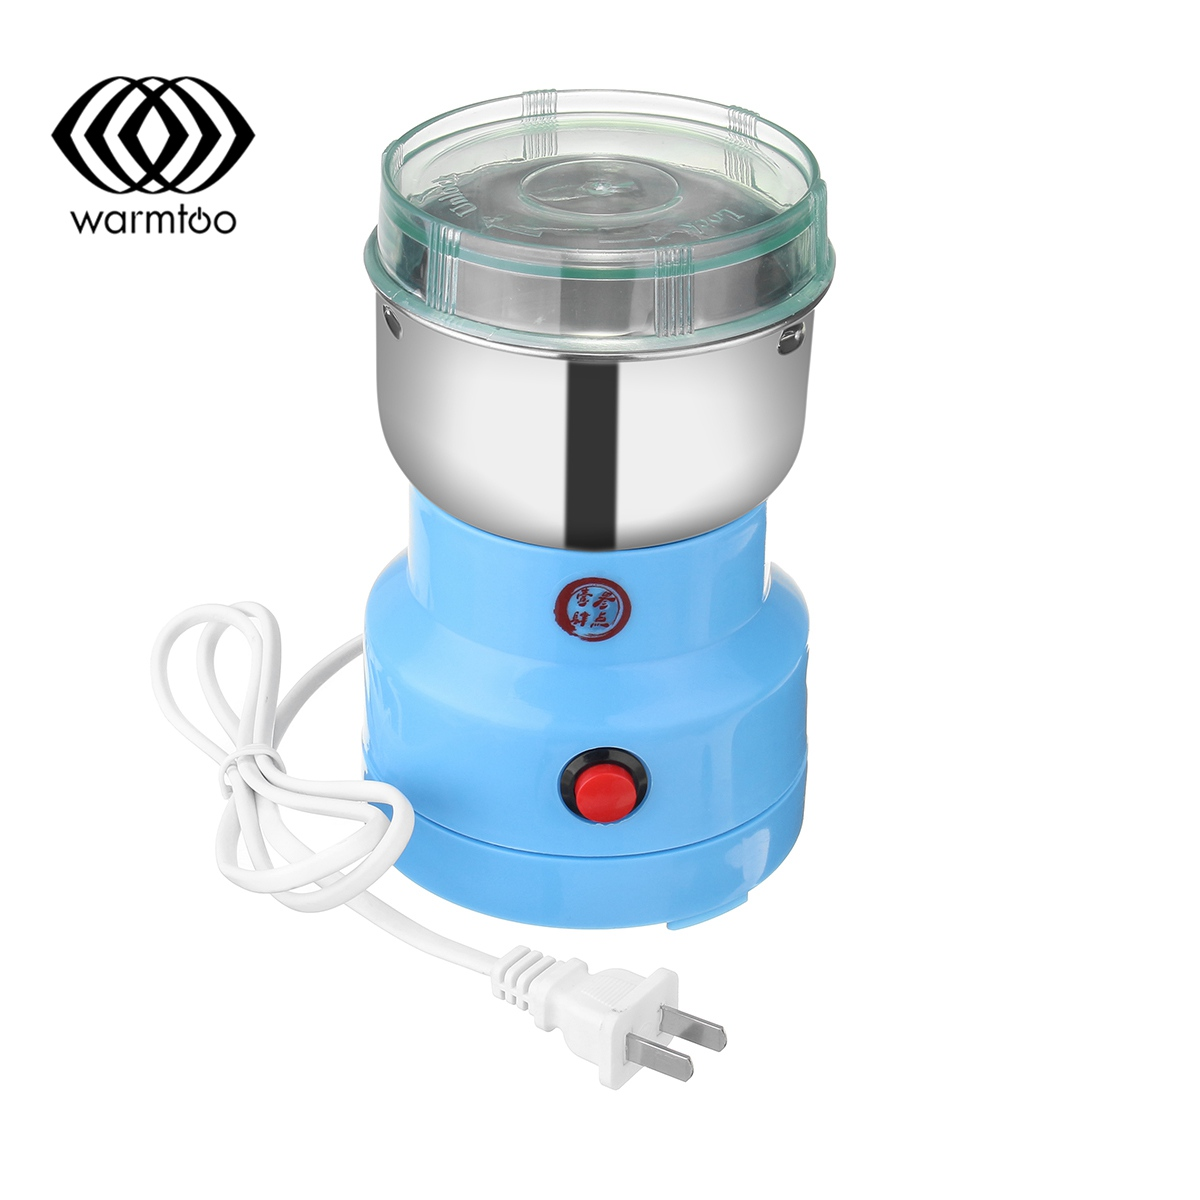 warmtoo Electric Herbs Spices Nuts Grains Coffee Bean Grinder Mill Grinding DIY Tool Home Medicine Flour Powder Crusher